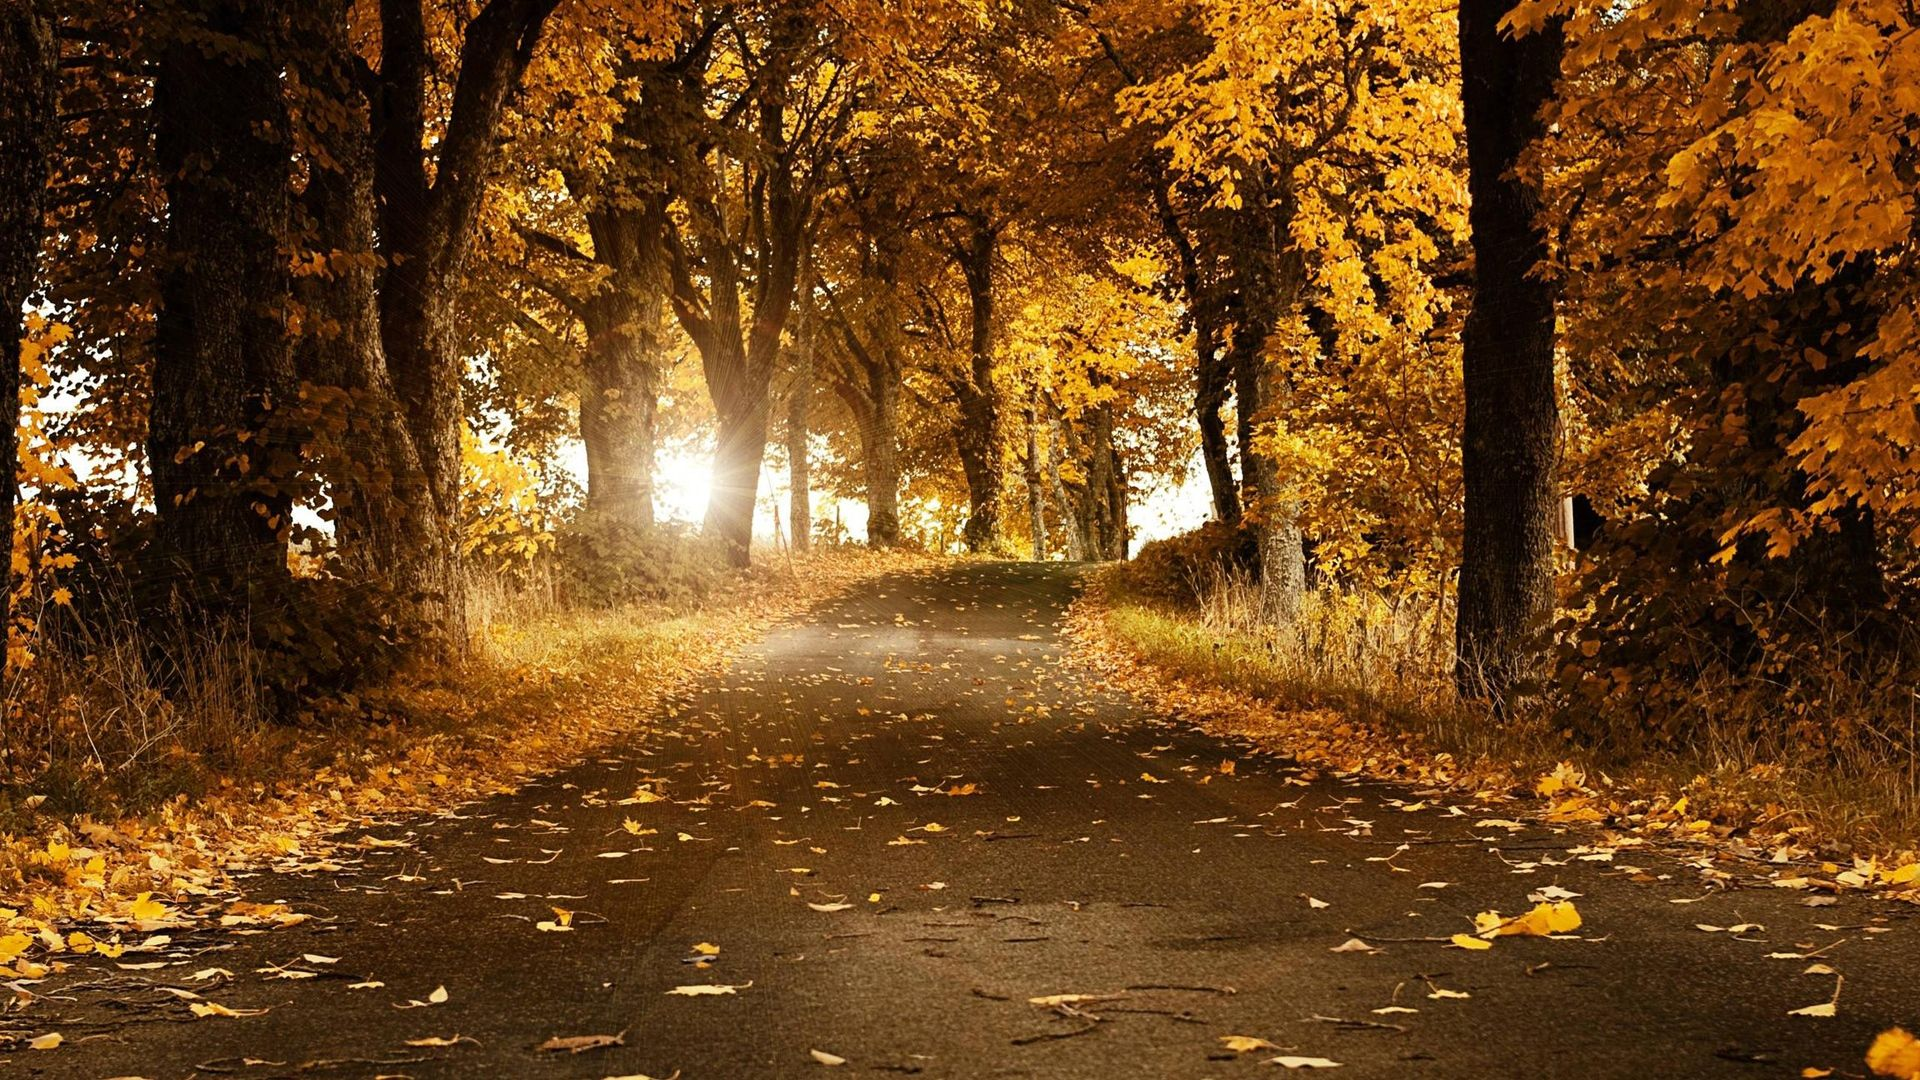 Download Wallpaper 1920x1080 Road Light Nature Full Hd 1080p Hd Autumn Scenes Beautiful Nature Beautiful Nature Wallpaper